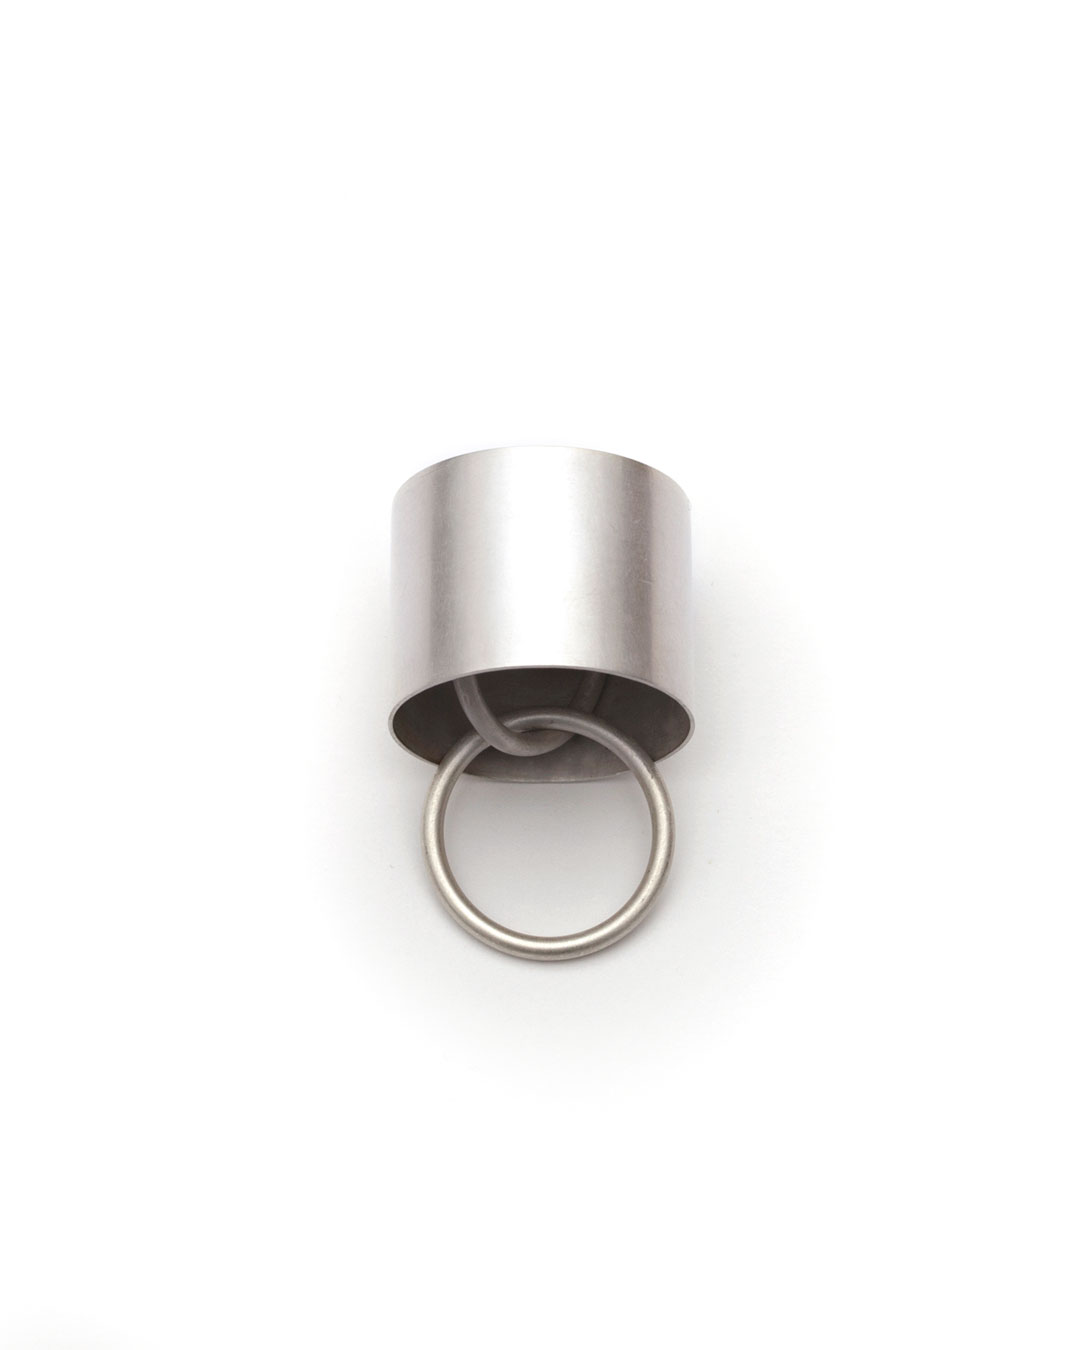 Junwon Jung, untitled, (round, multiple rings), 2016, ring; silver, gold, 30 x 30 x 35 mm, €970